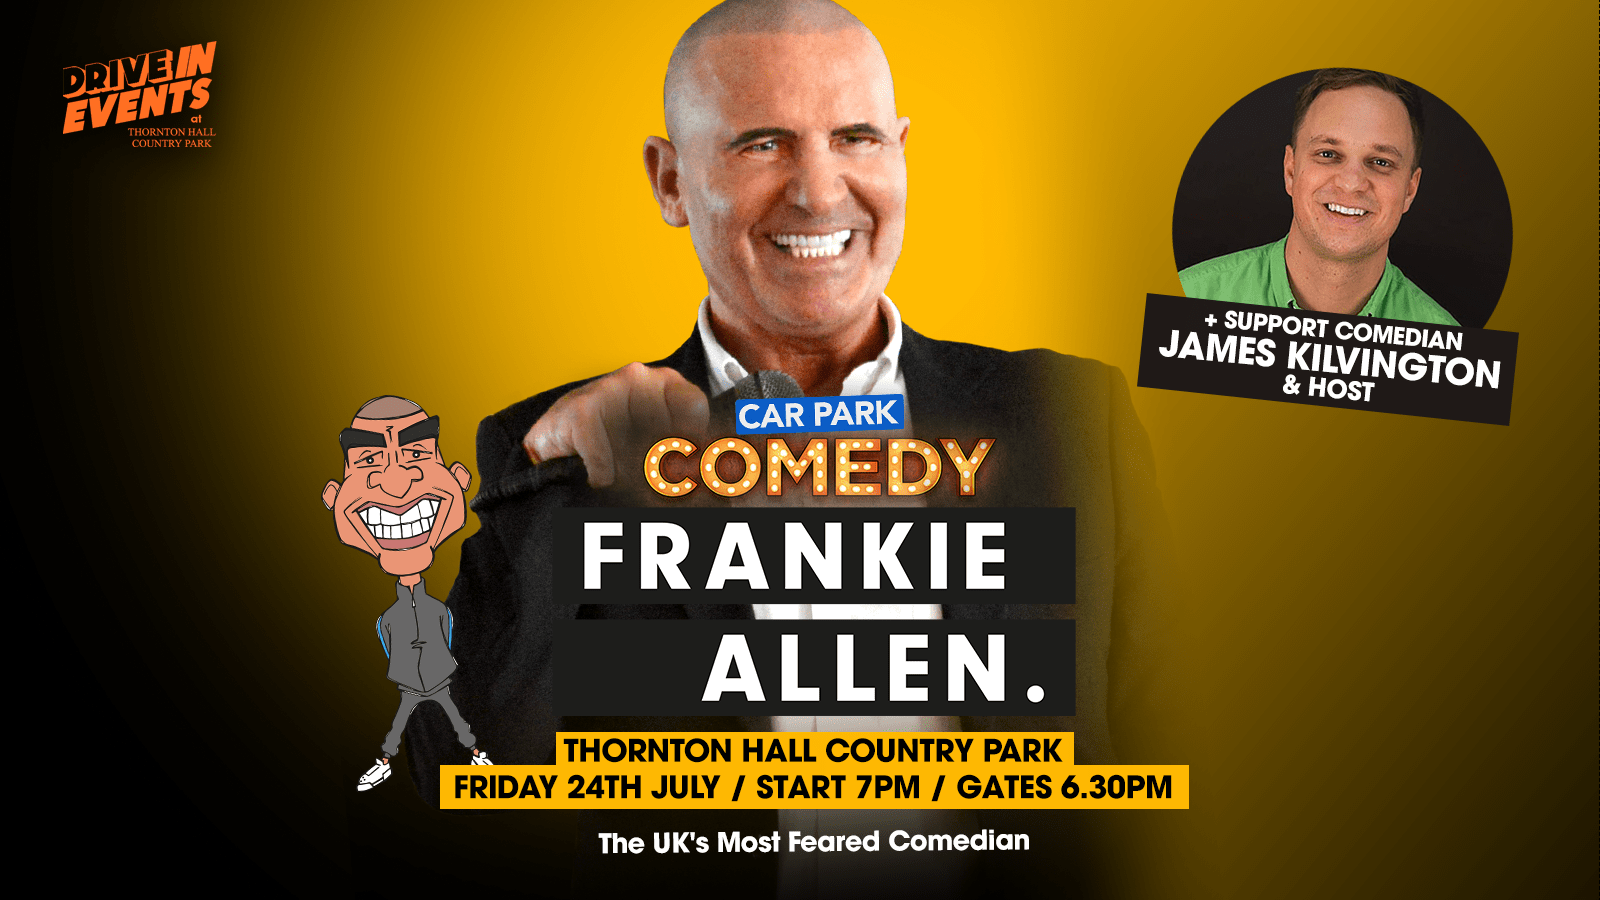 Car Park Comedy (Frankie Allen + Support)